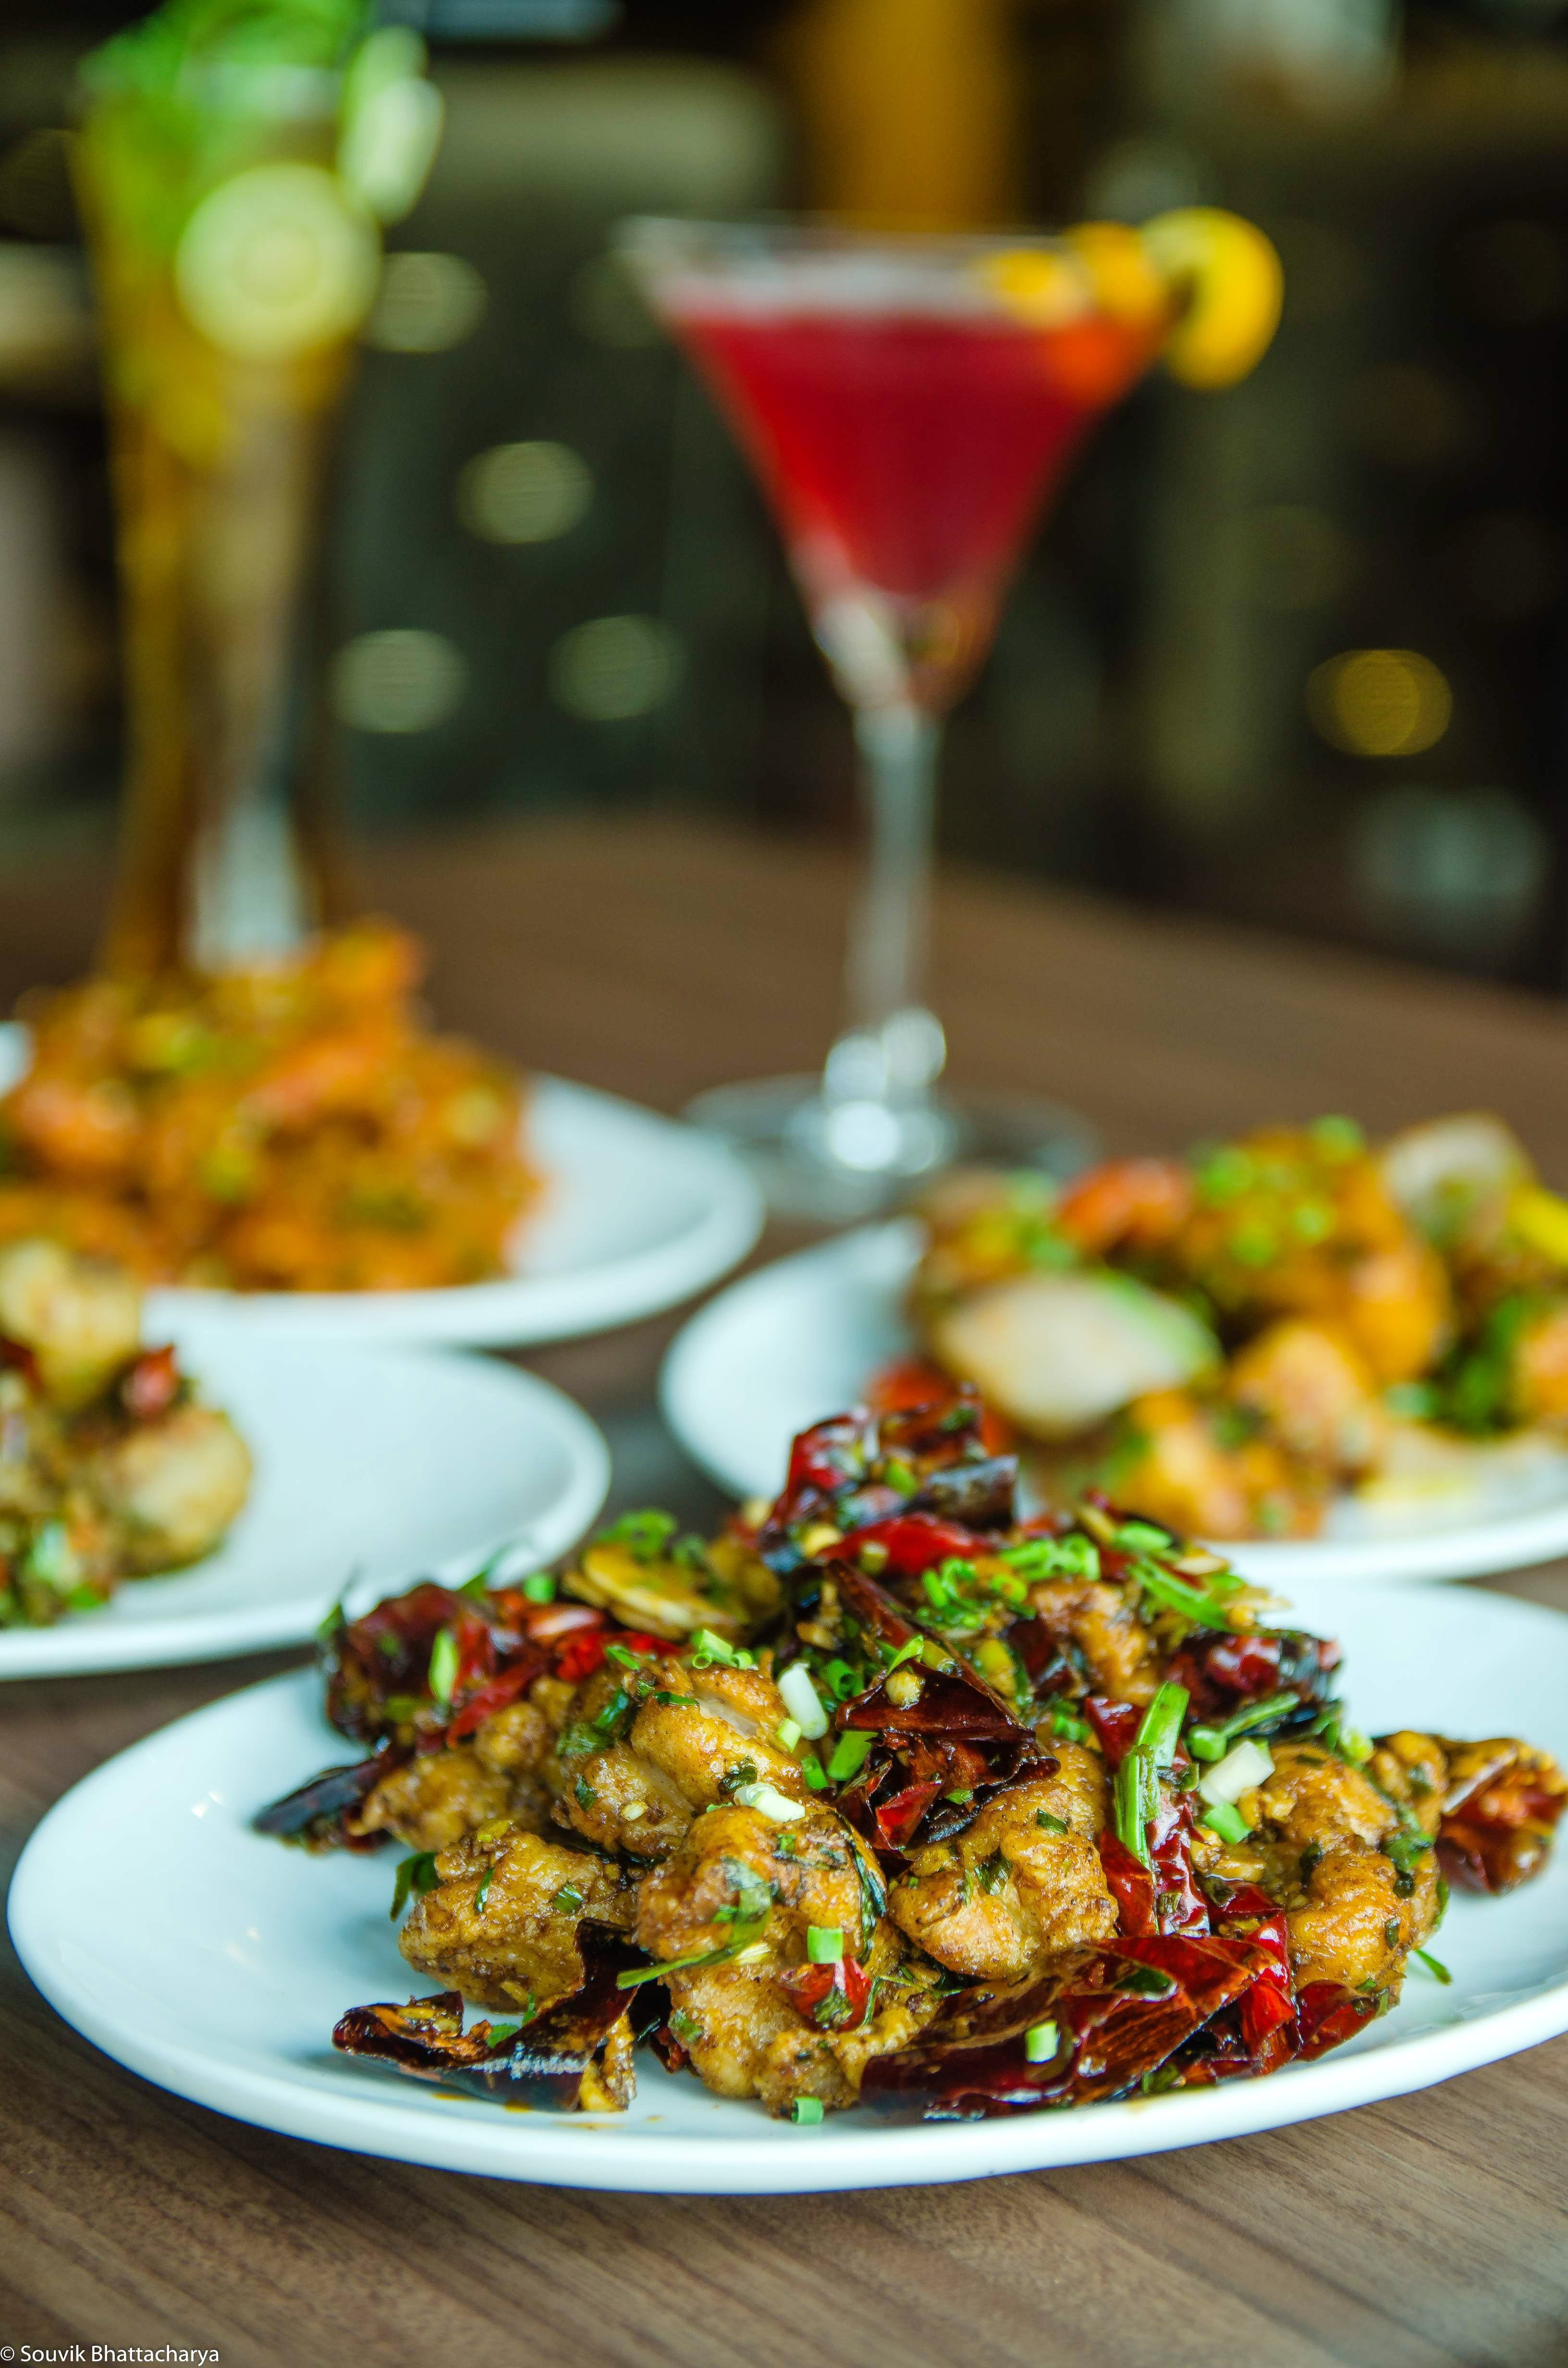 Bookmark This Place For Their Amazing North Indian Delicaies